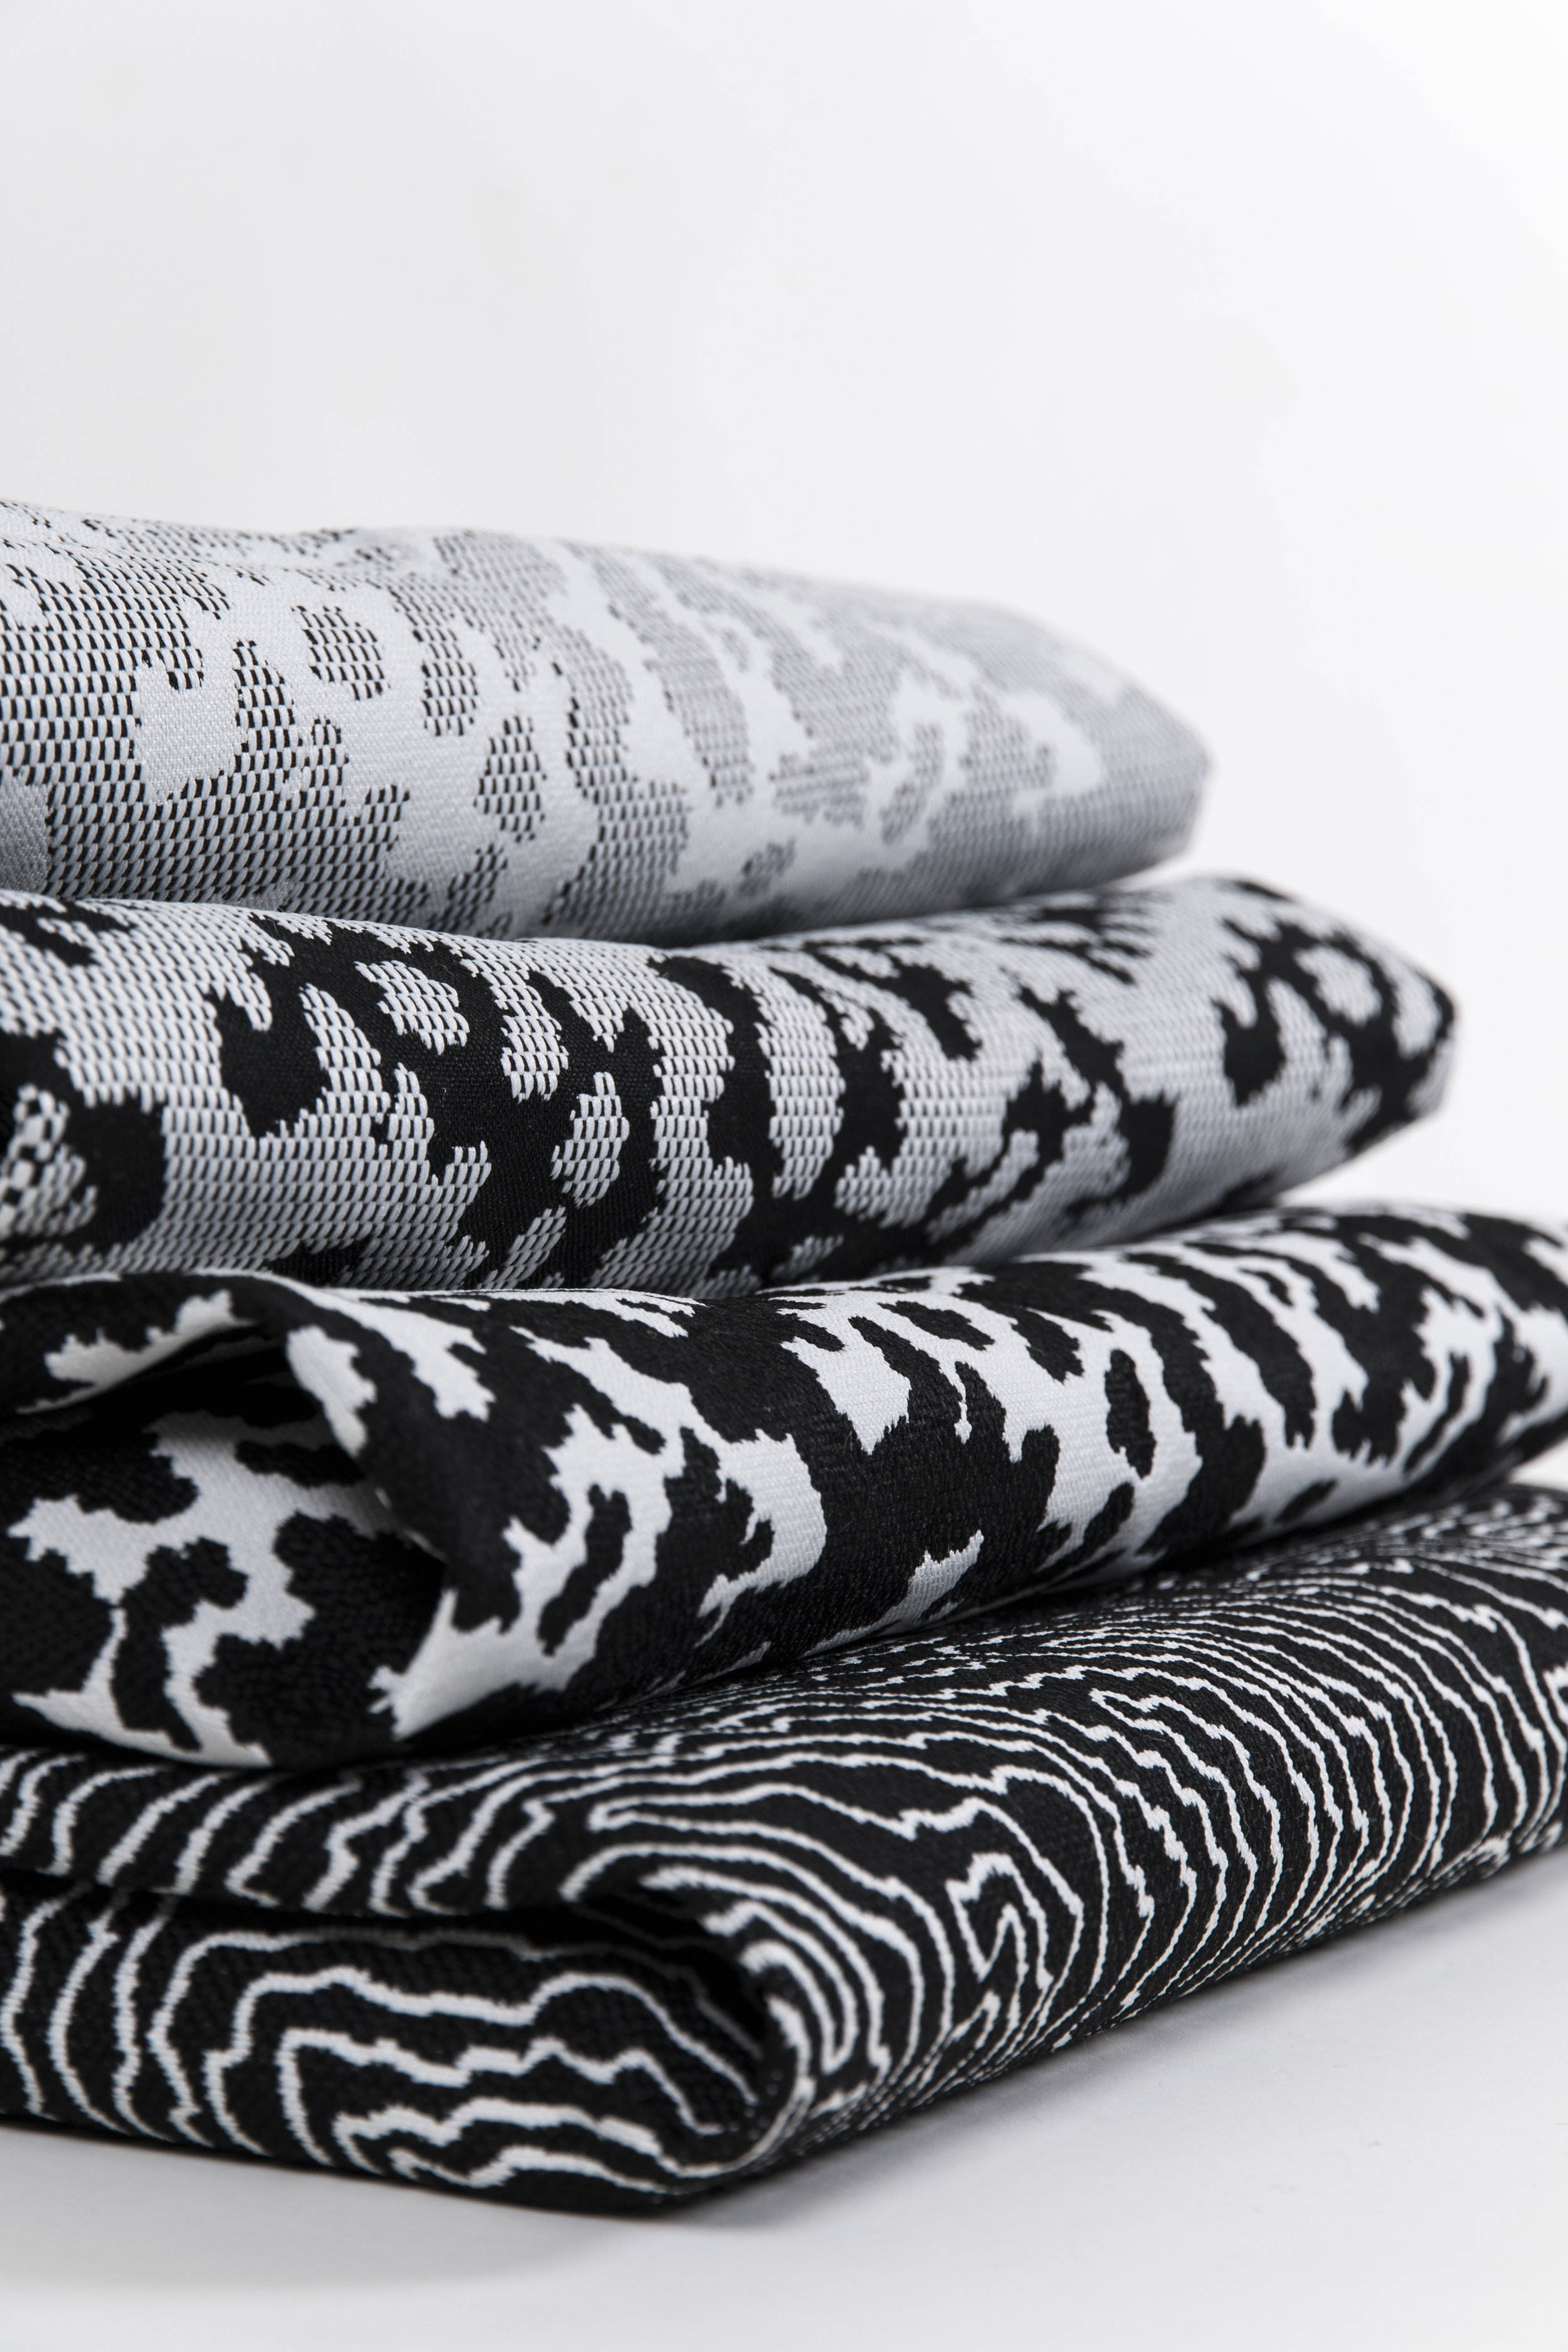 CoopDPS BlackWhite Upholstery Collection 06.jpg